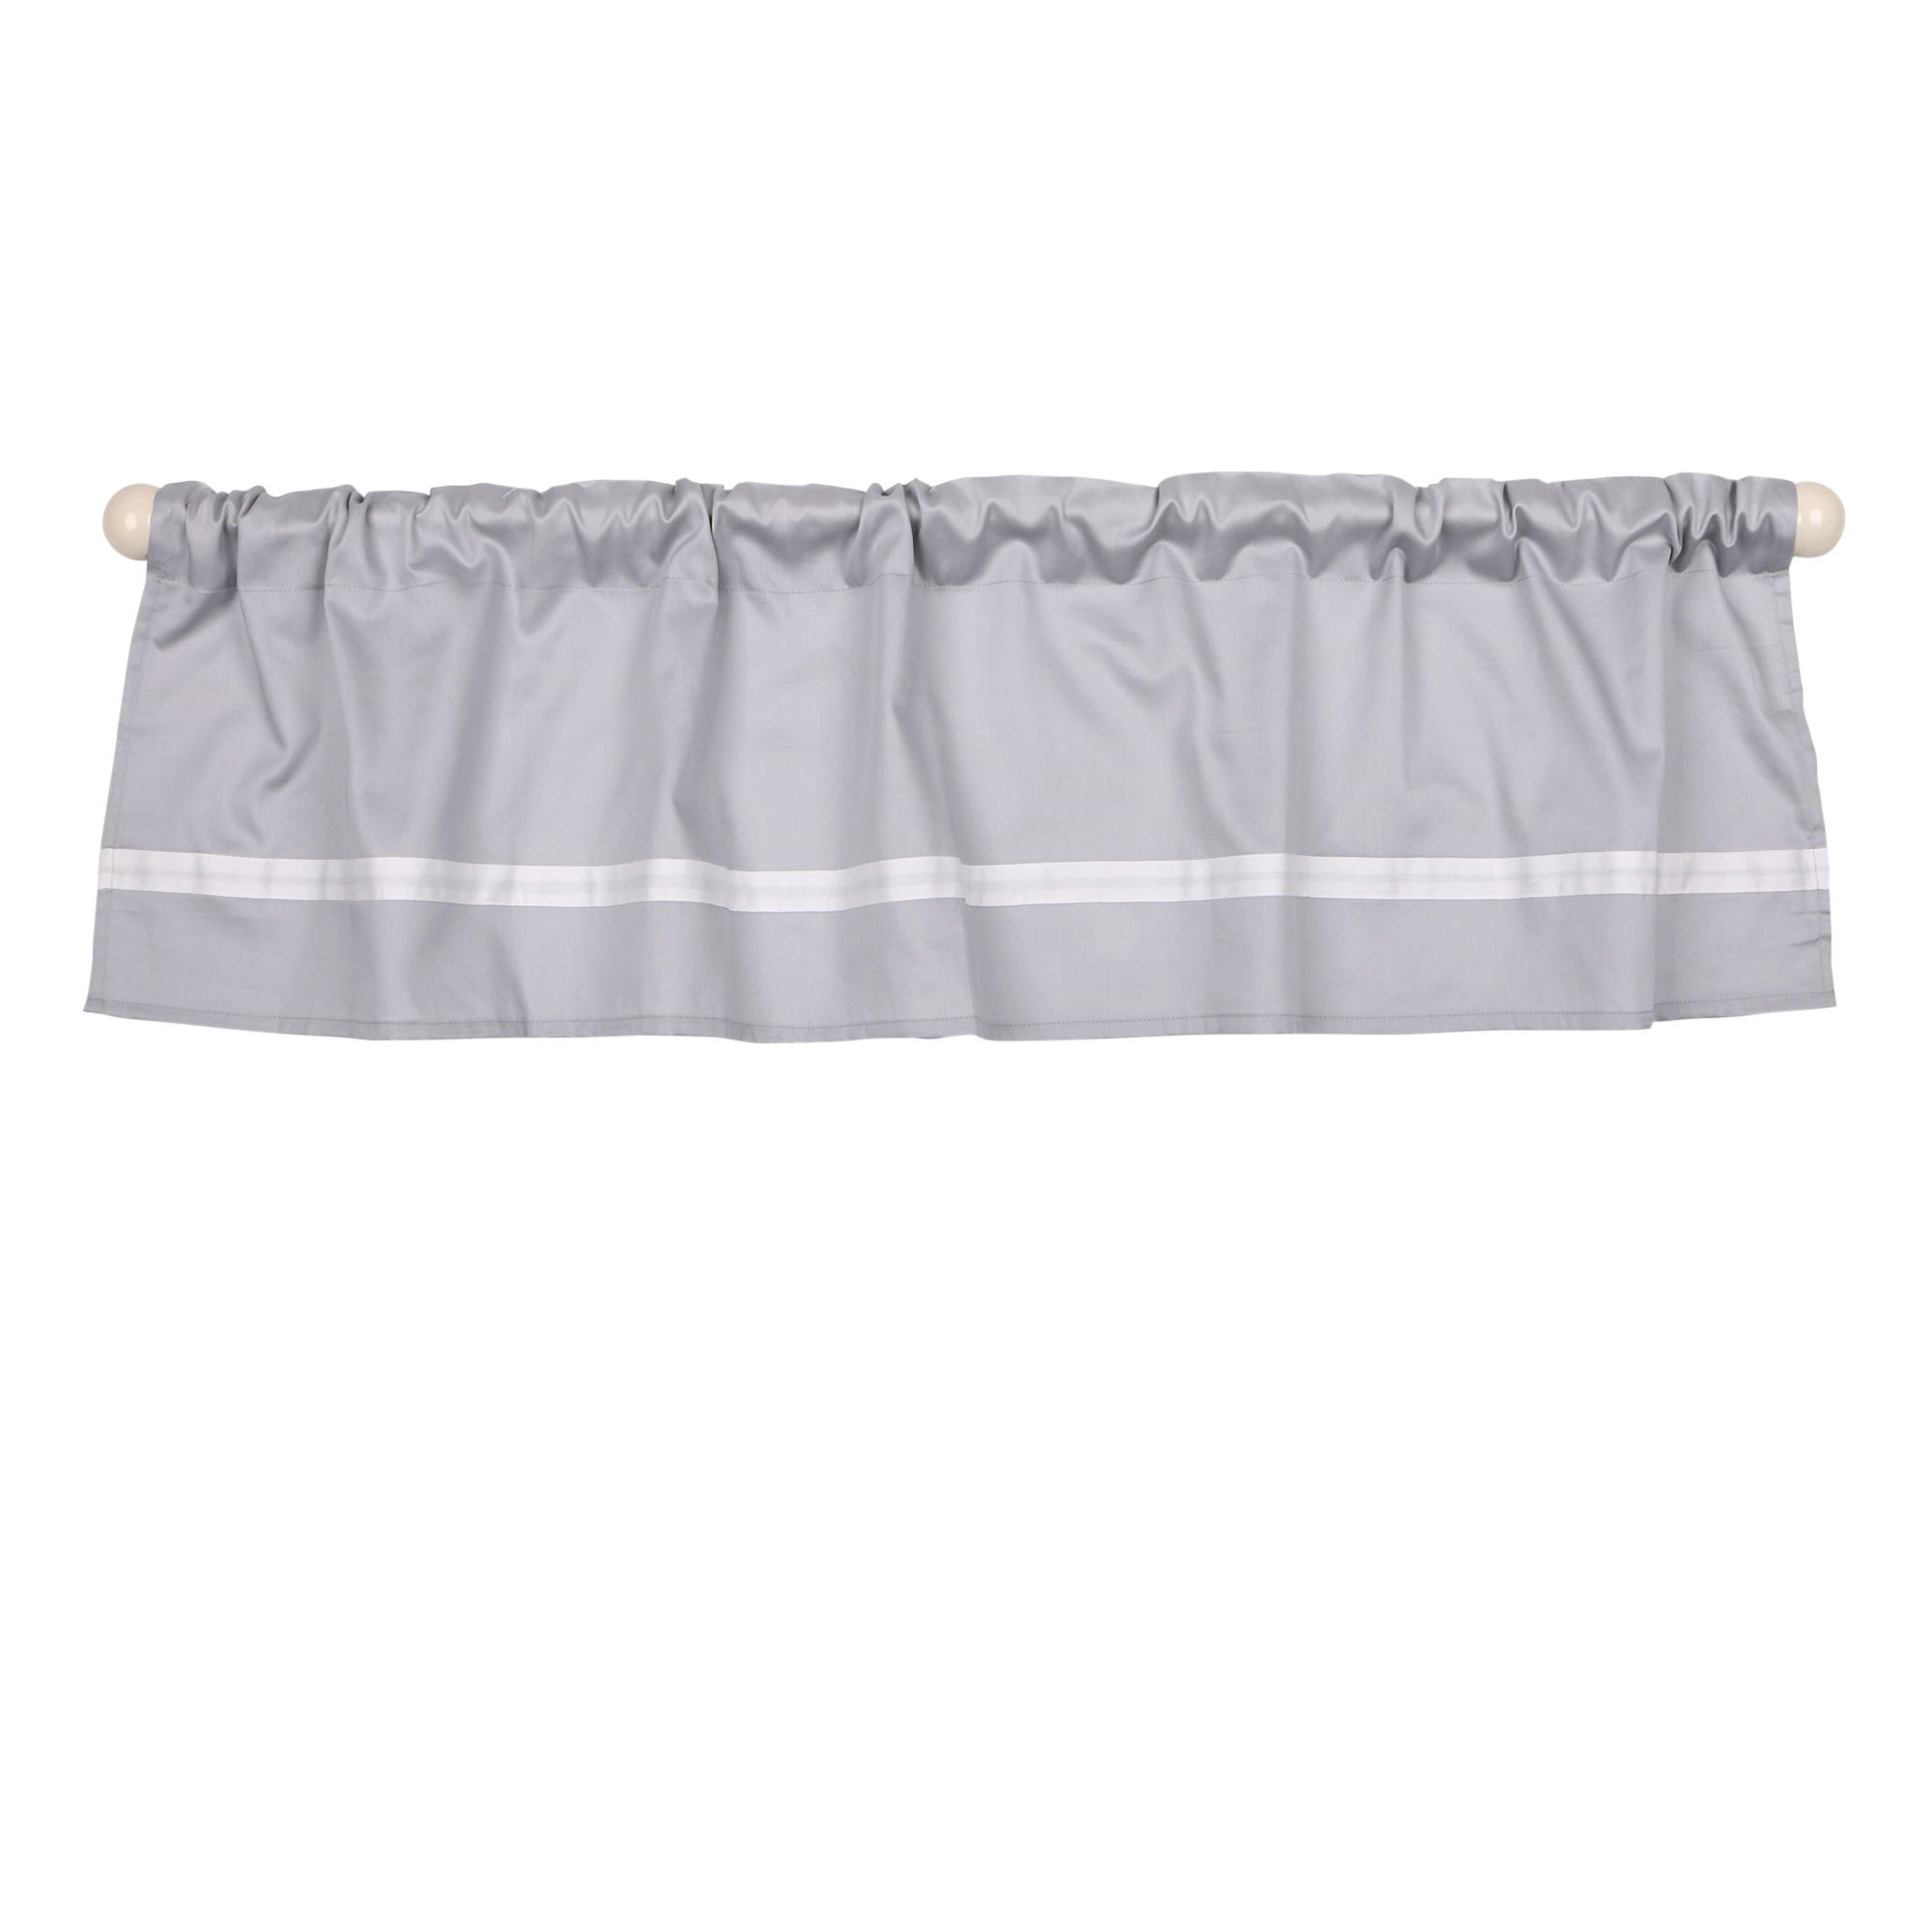 Grey Tailored Window Valance by The Peanut Shell - 100% Cotton Sateen